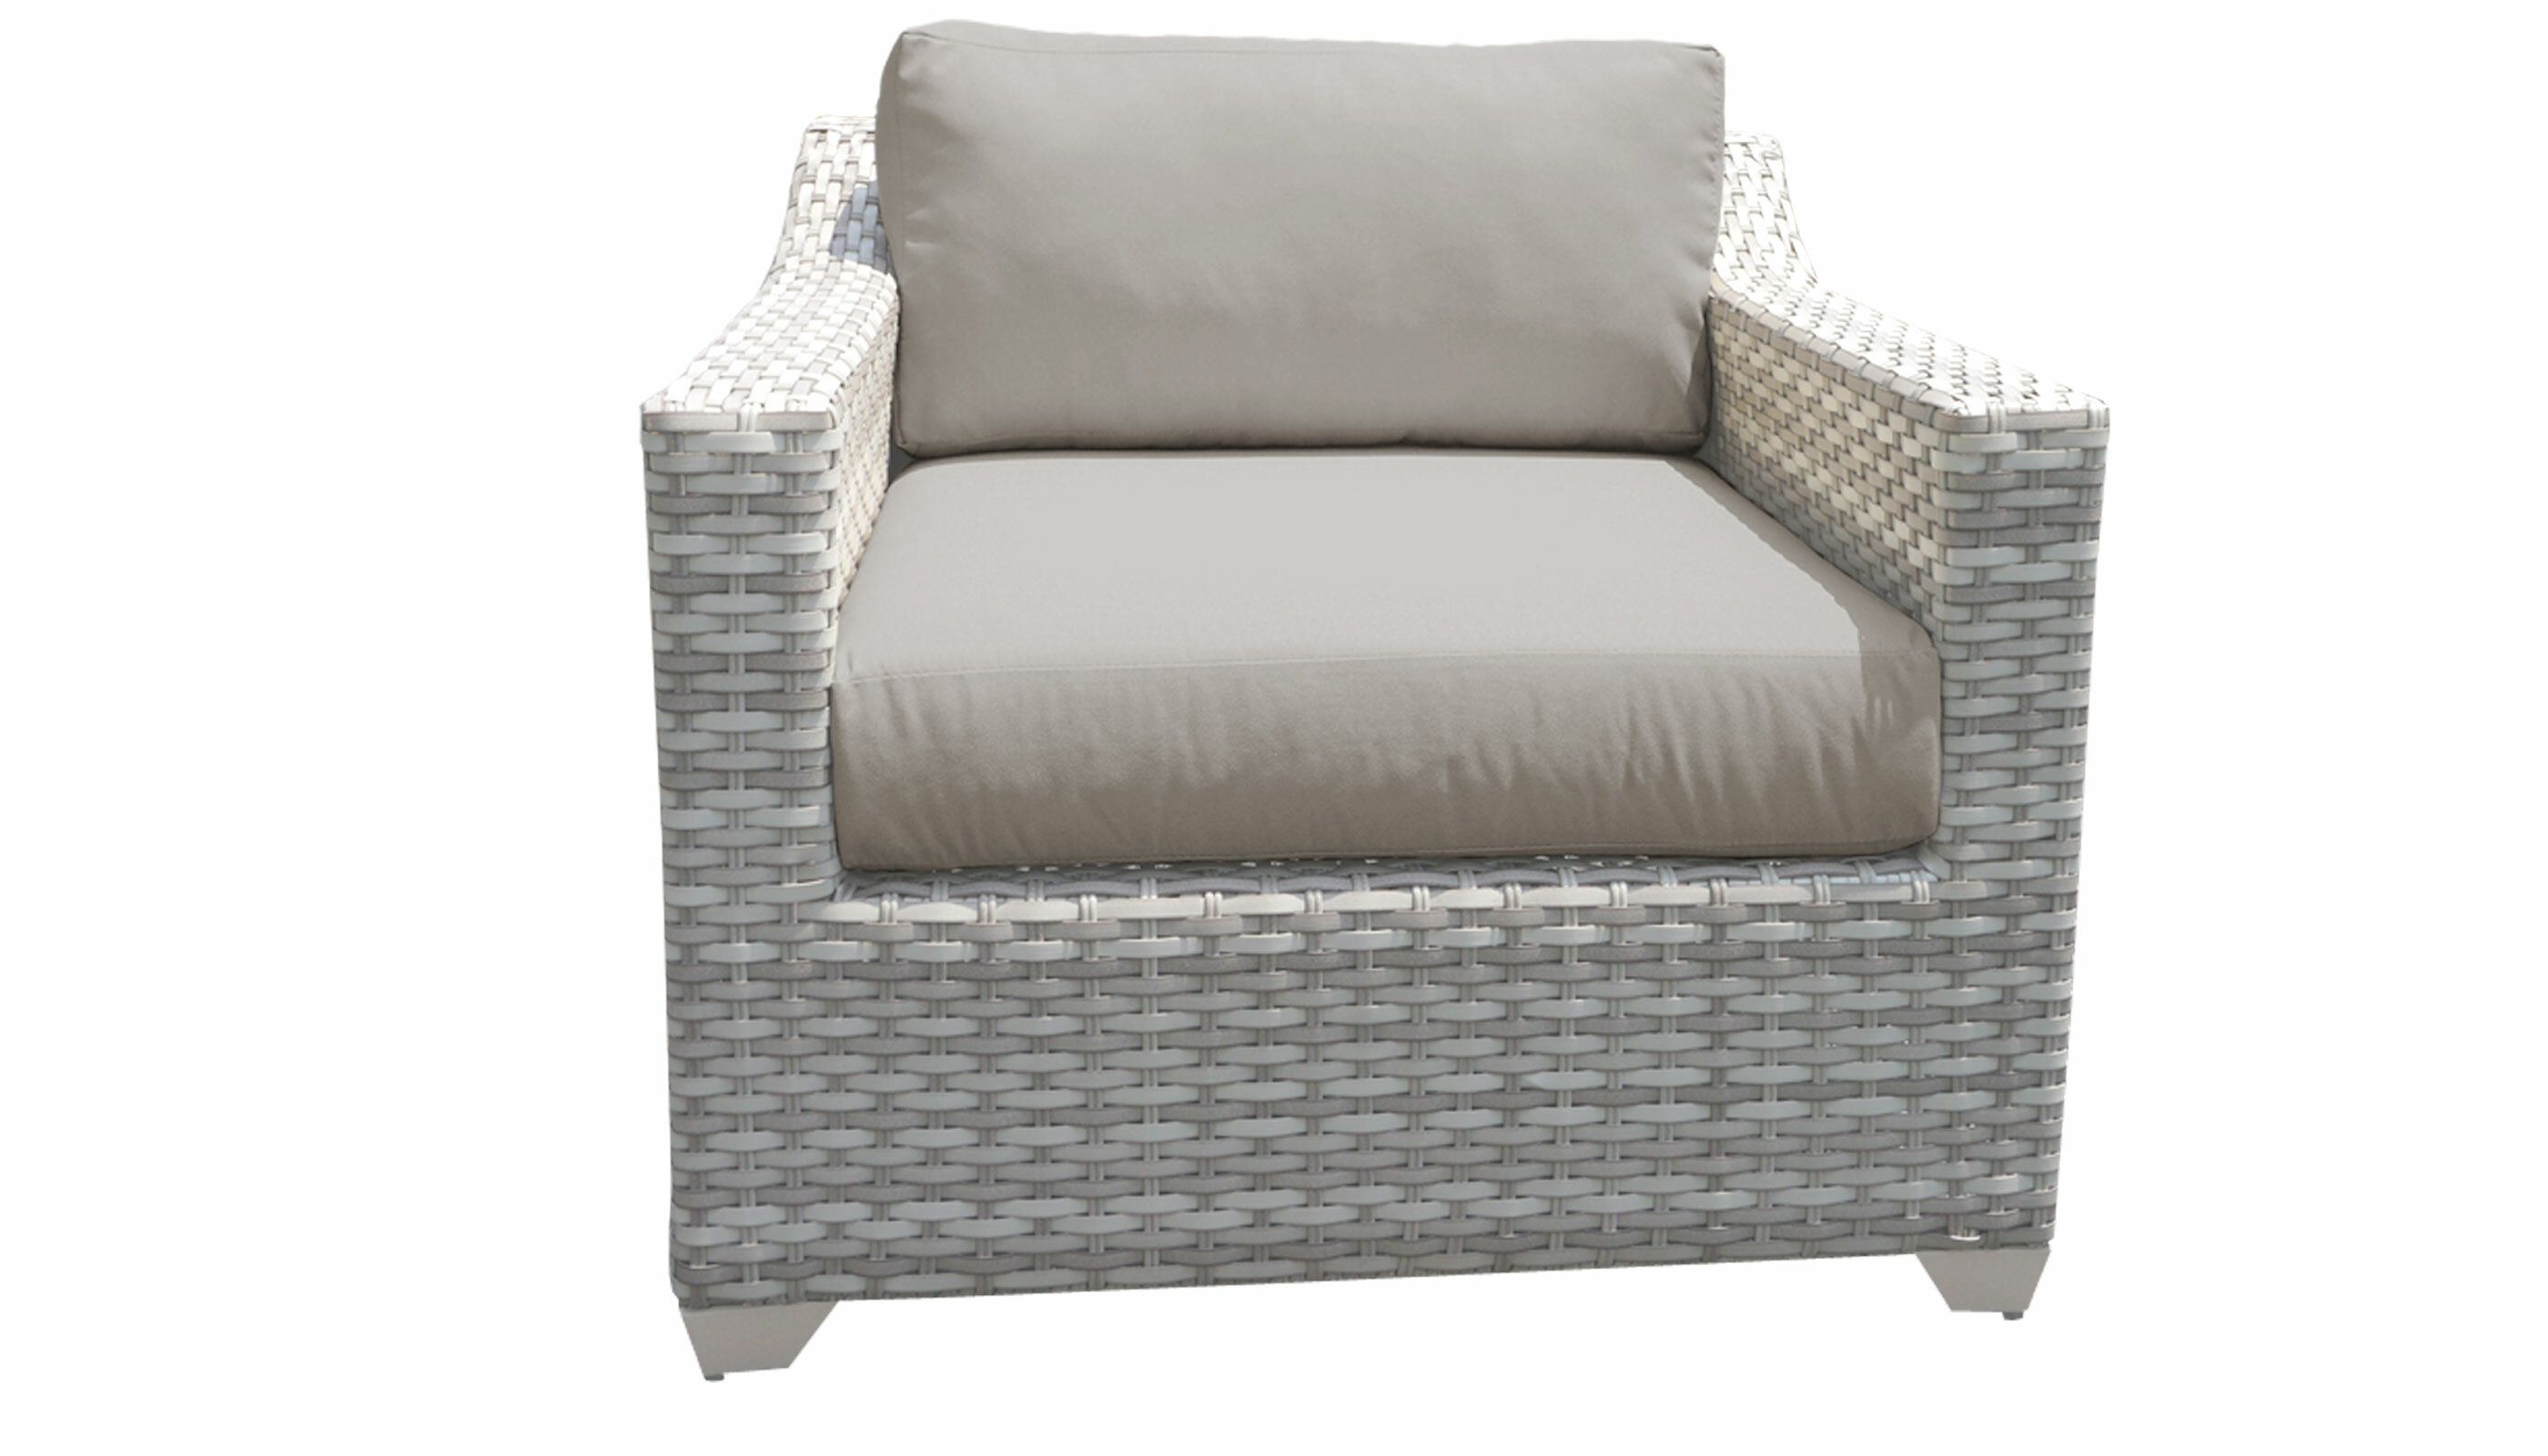 Fairmont Patio Furniture.Fairmont Patio Chair With Cushions